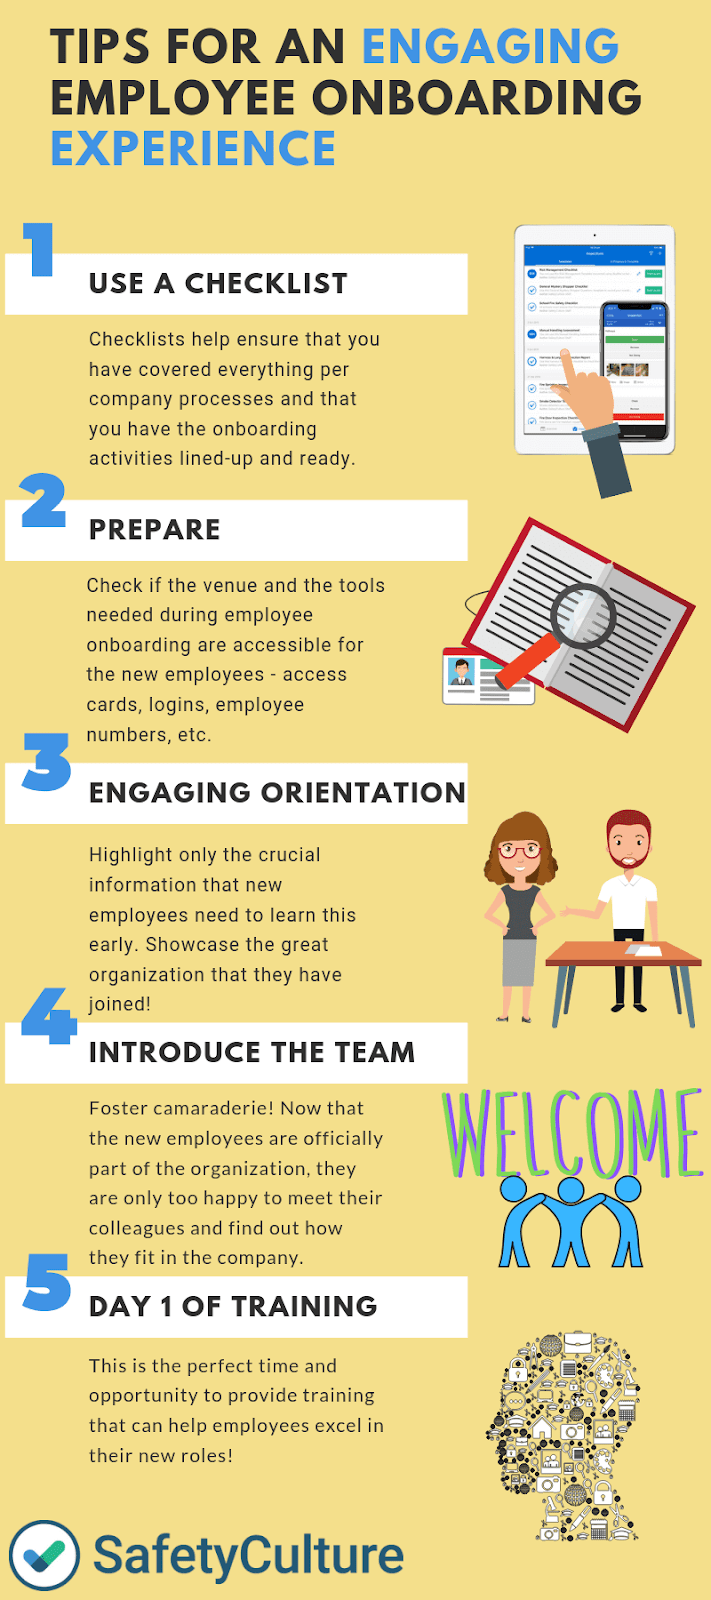 Tips-for-an-Engaging-Employee-Onboarding-Experience_Infographic